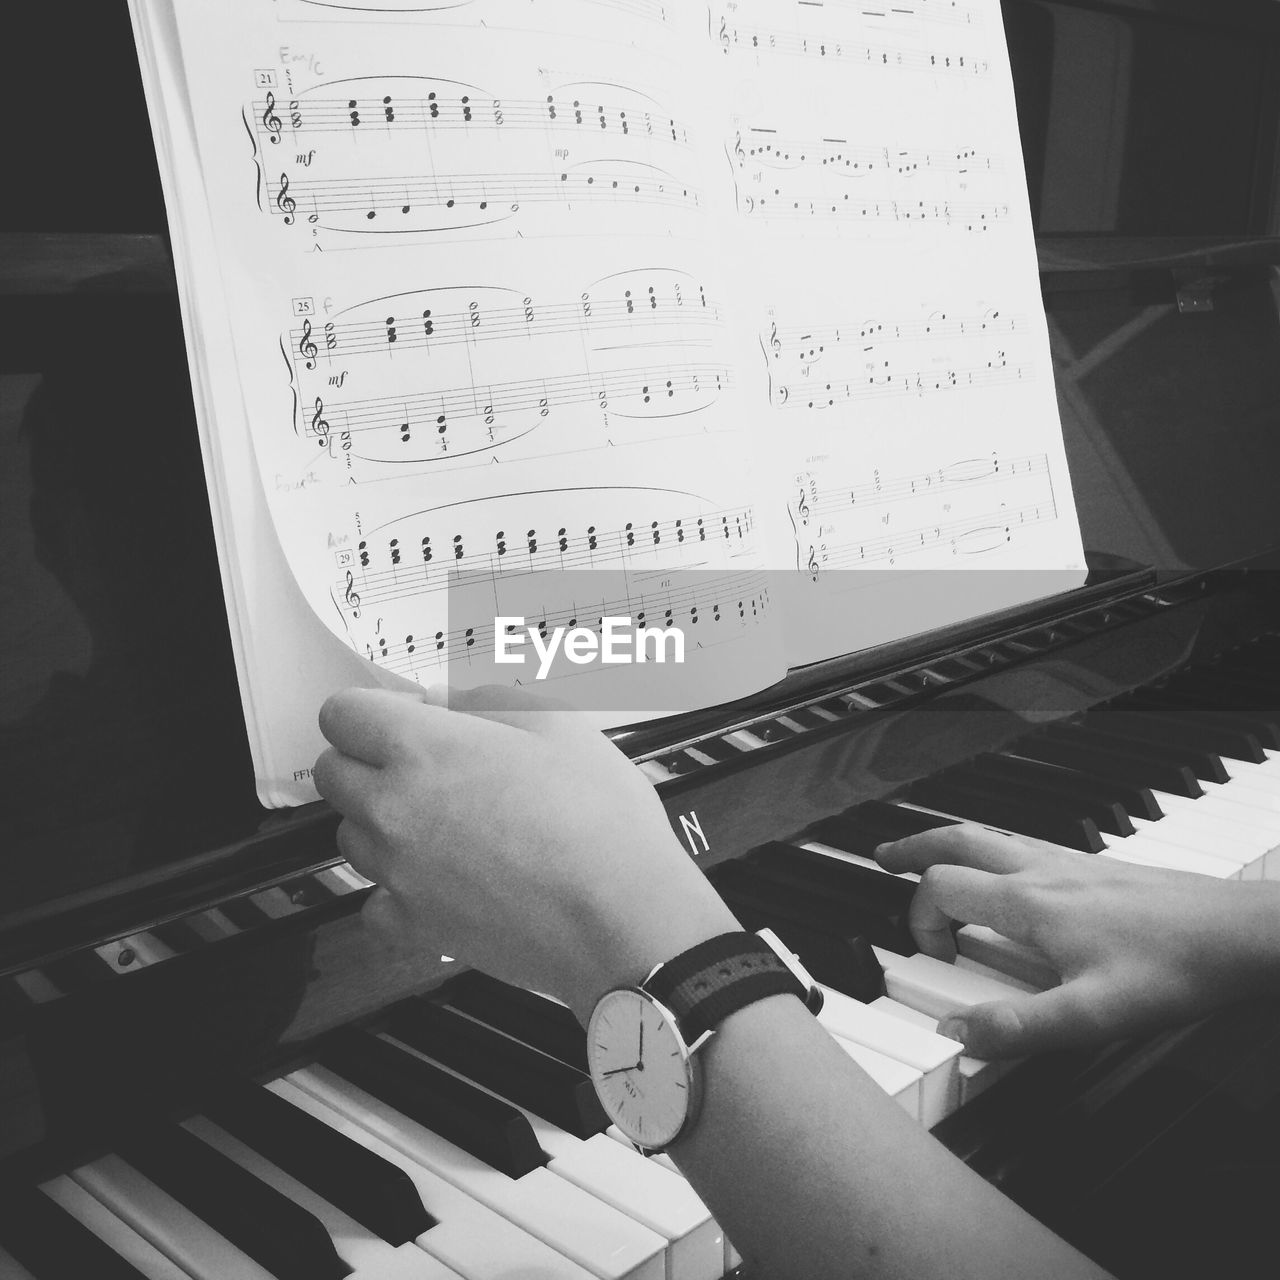 Cropped image of person holding music sheet while playing piano